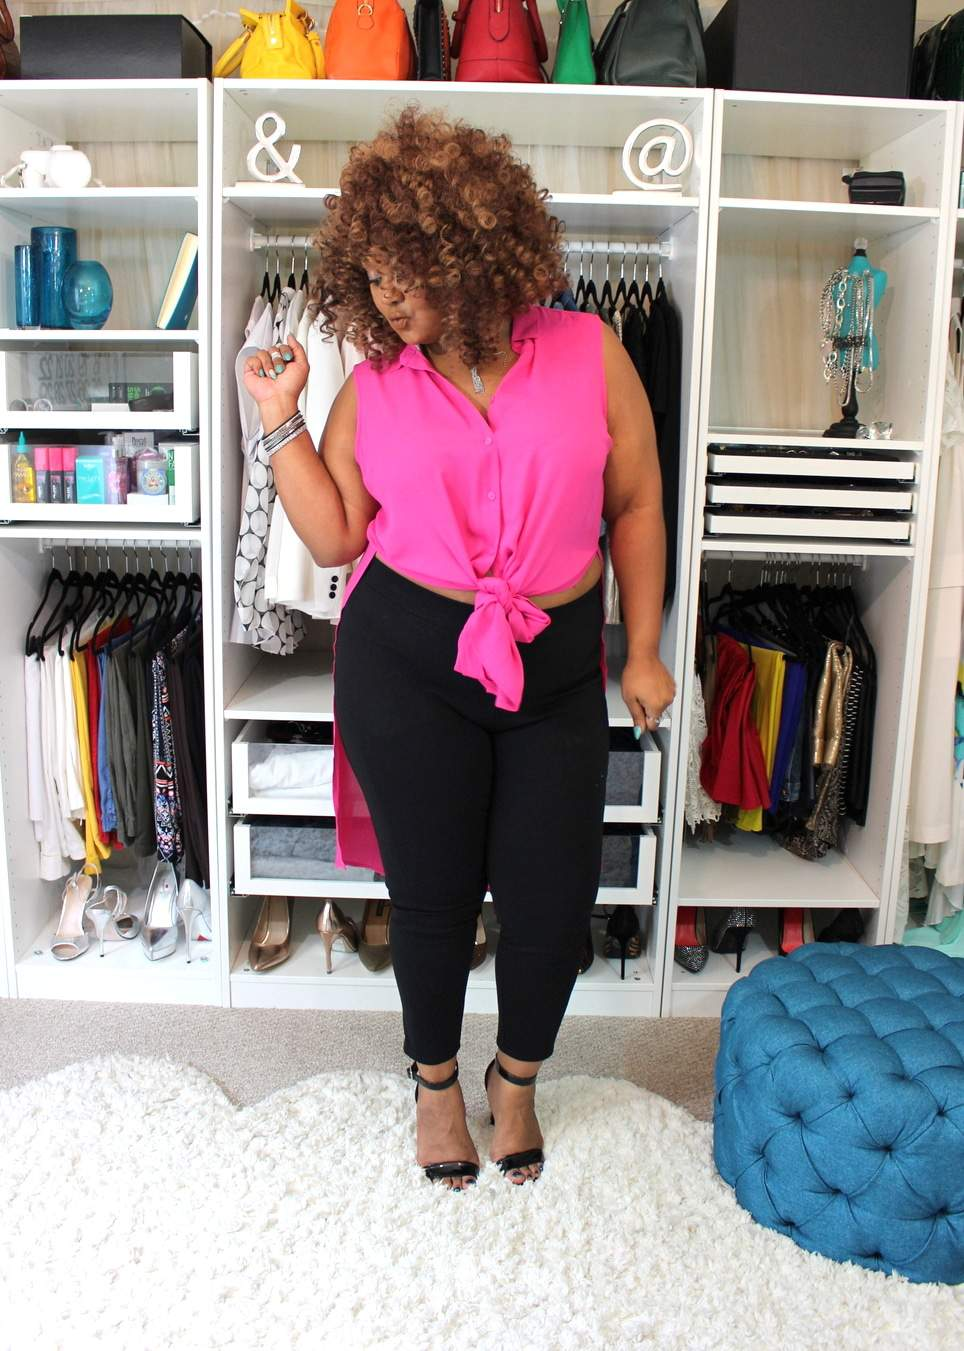 My Style Taking a Whirl in Boutique+ from JCPenney